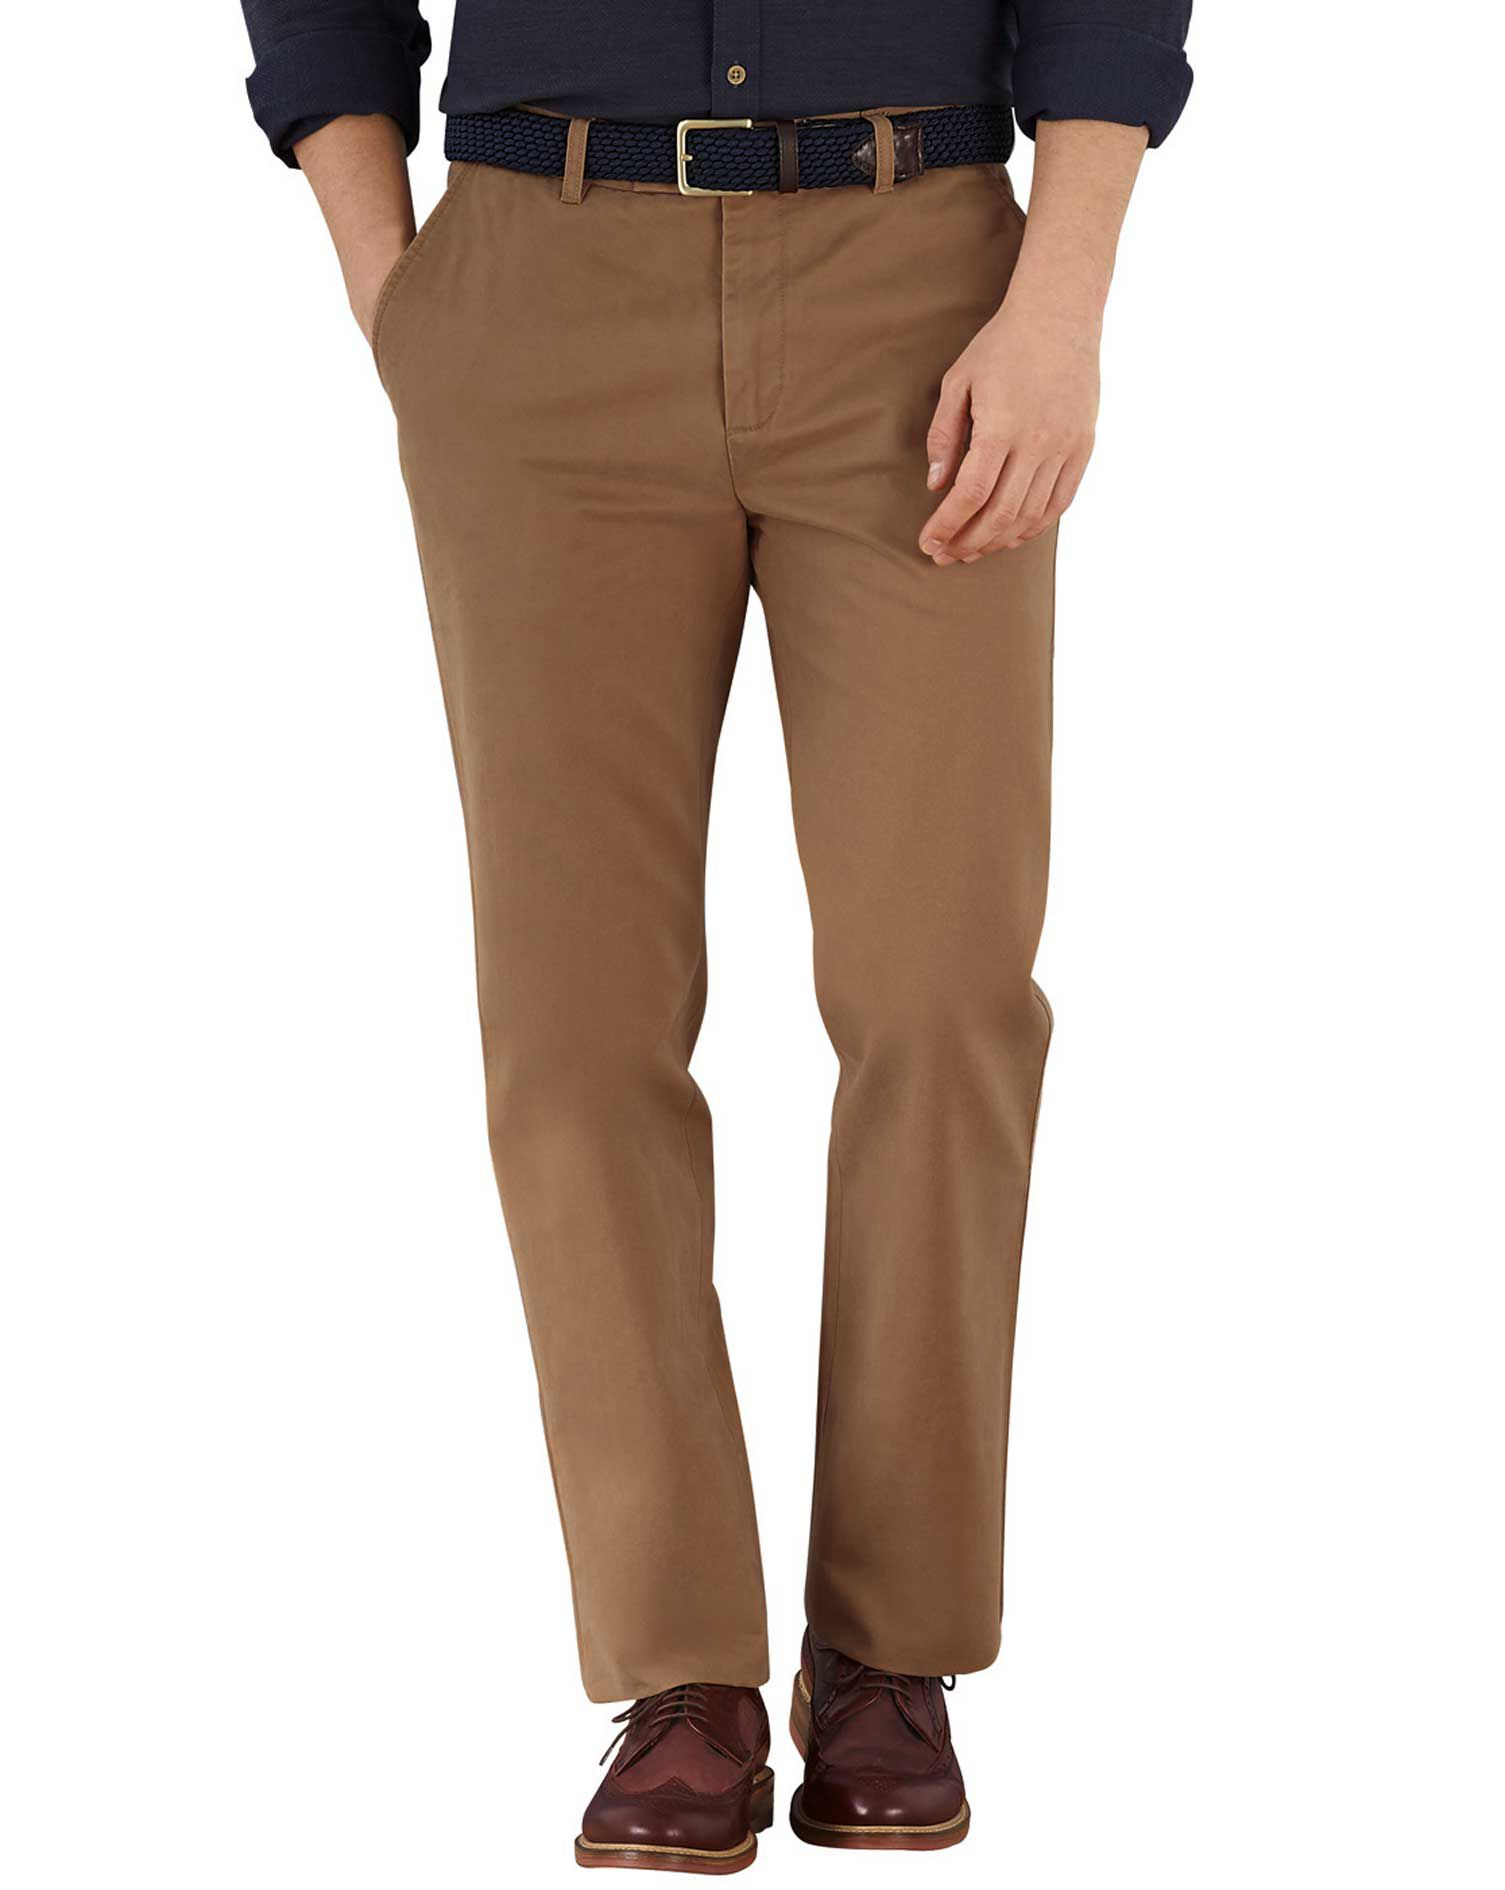 Camel Slim Fit Flat Front Cotton Chino Trousers Size W38 L30 by Charles Tyrwhitt